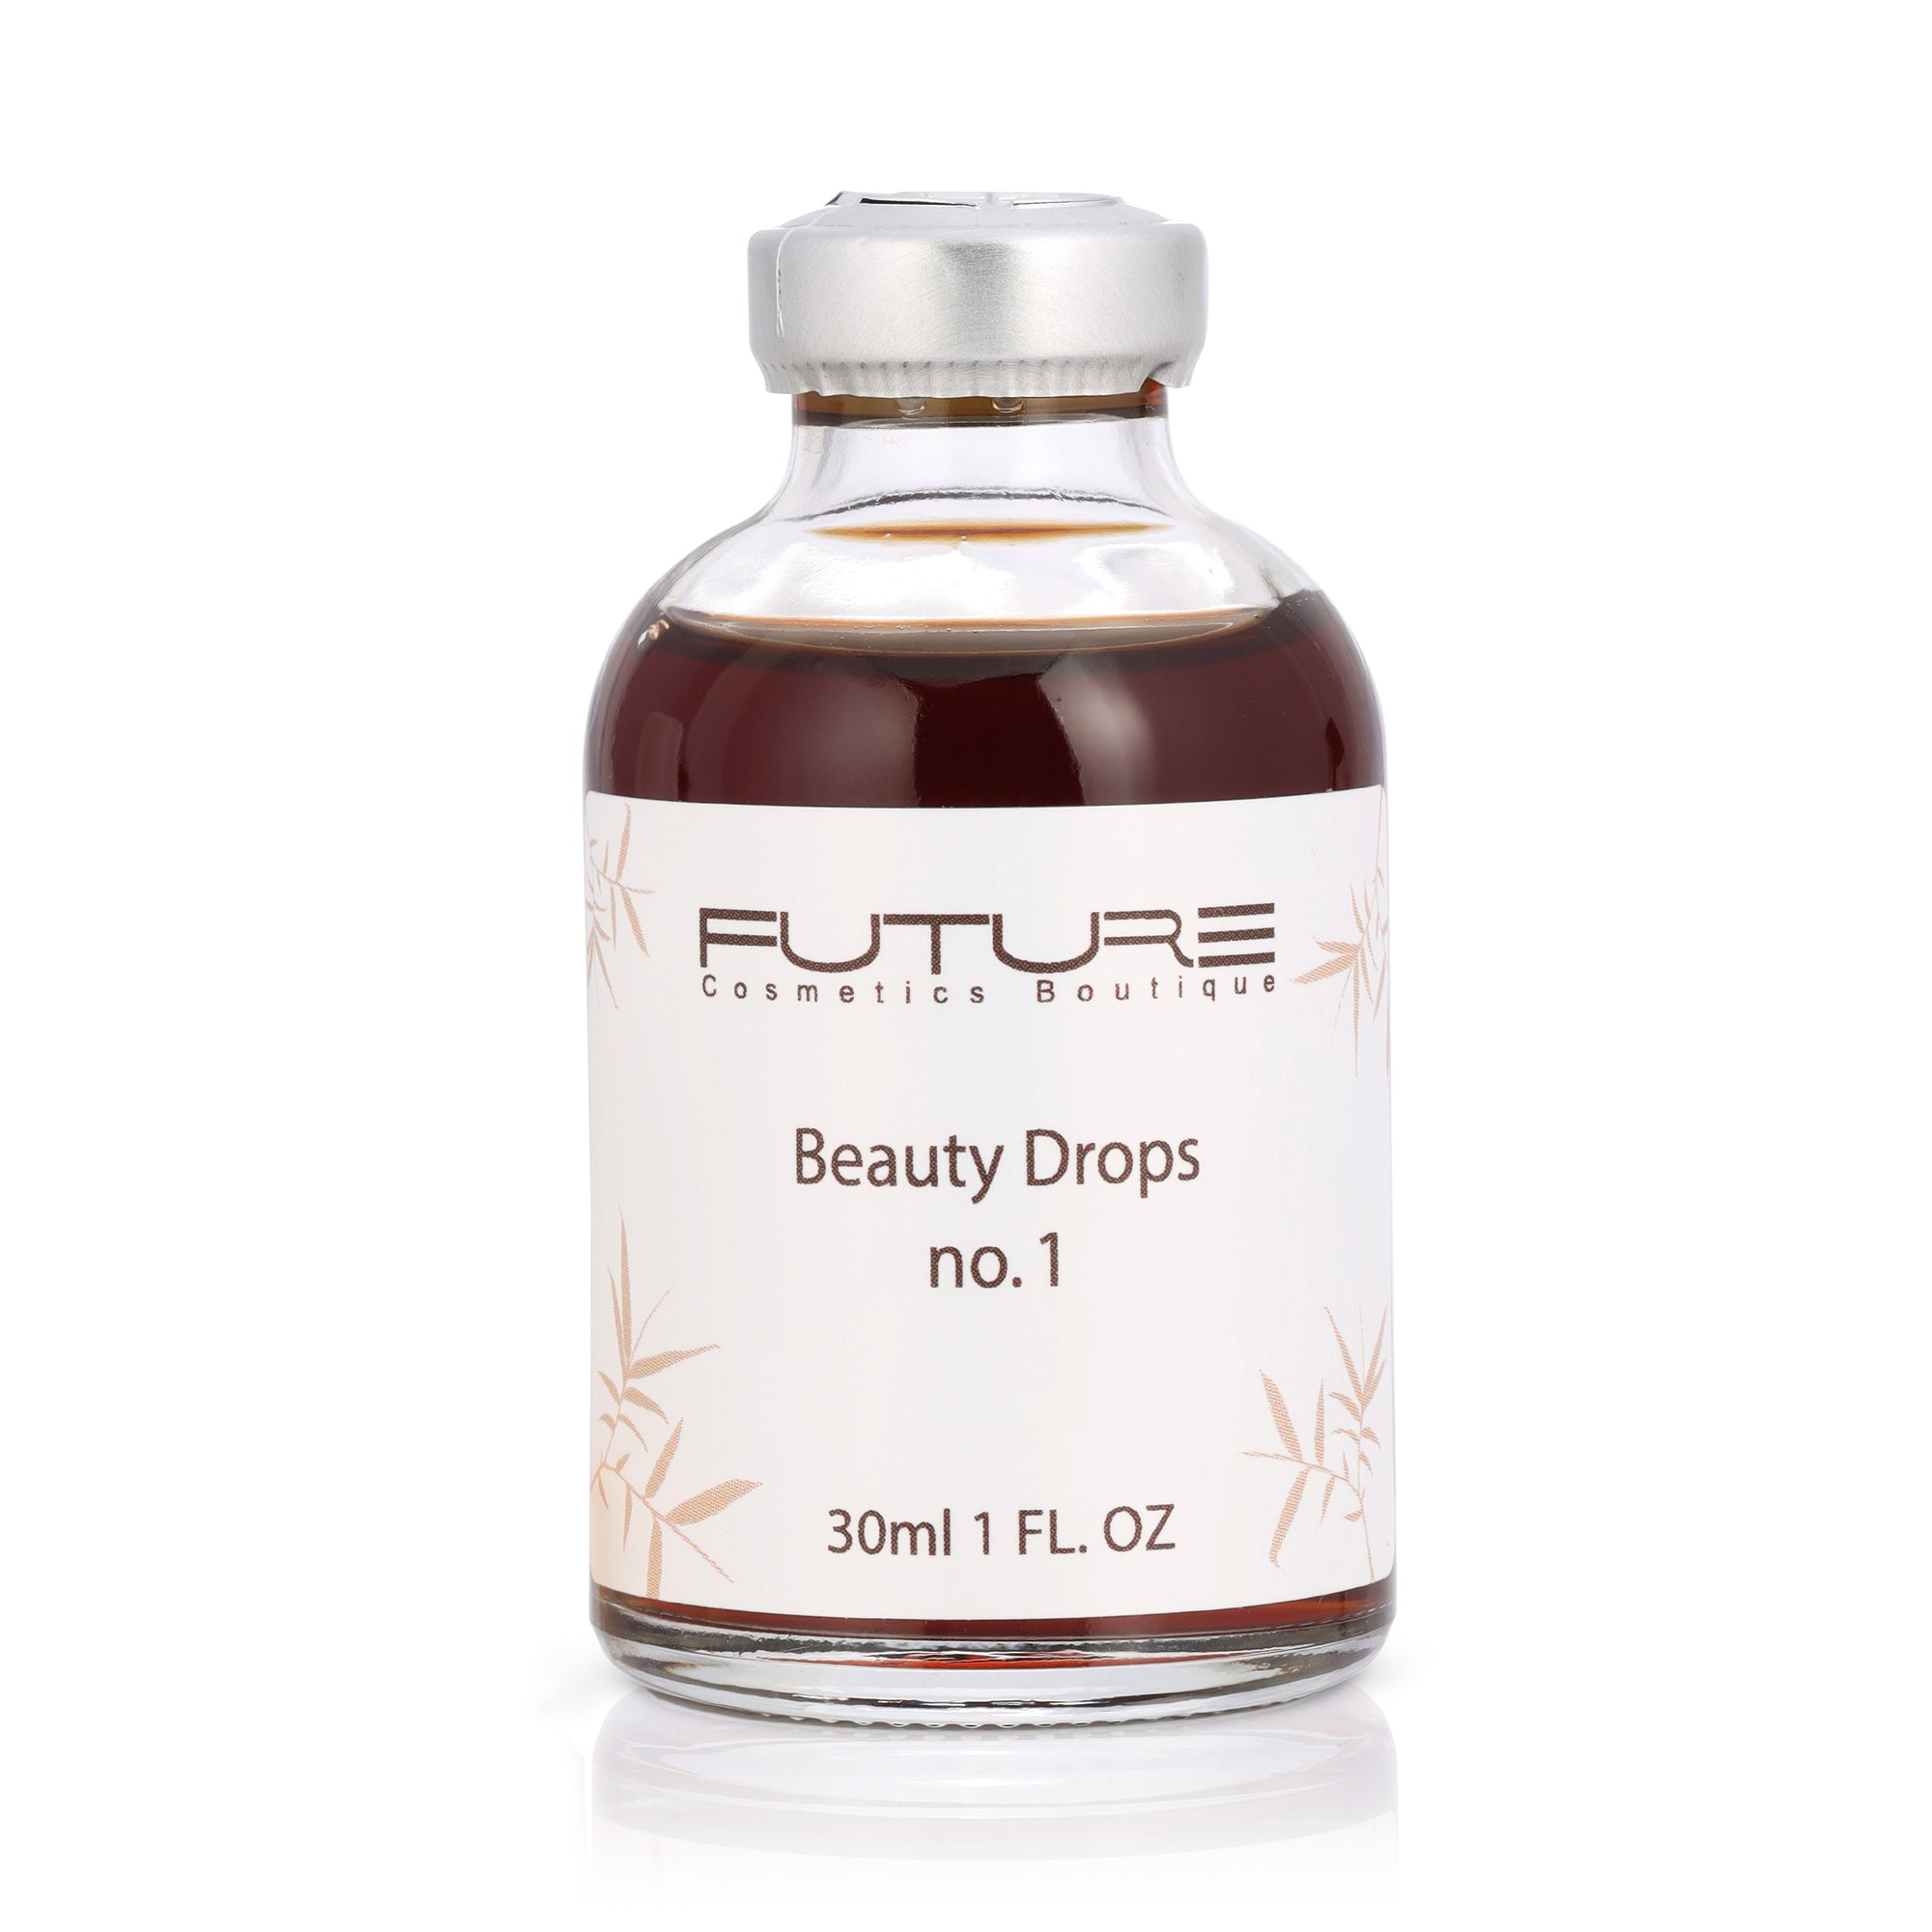 Future - BEAUTY DROPS NO. 1 - 1 FL. OZ.